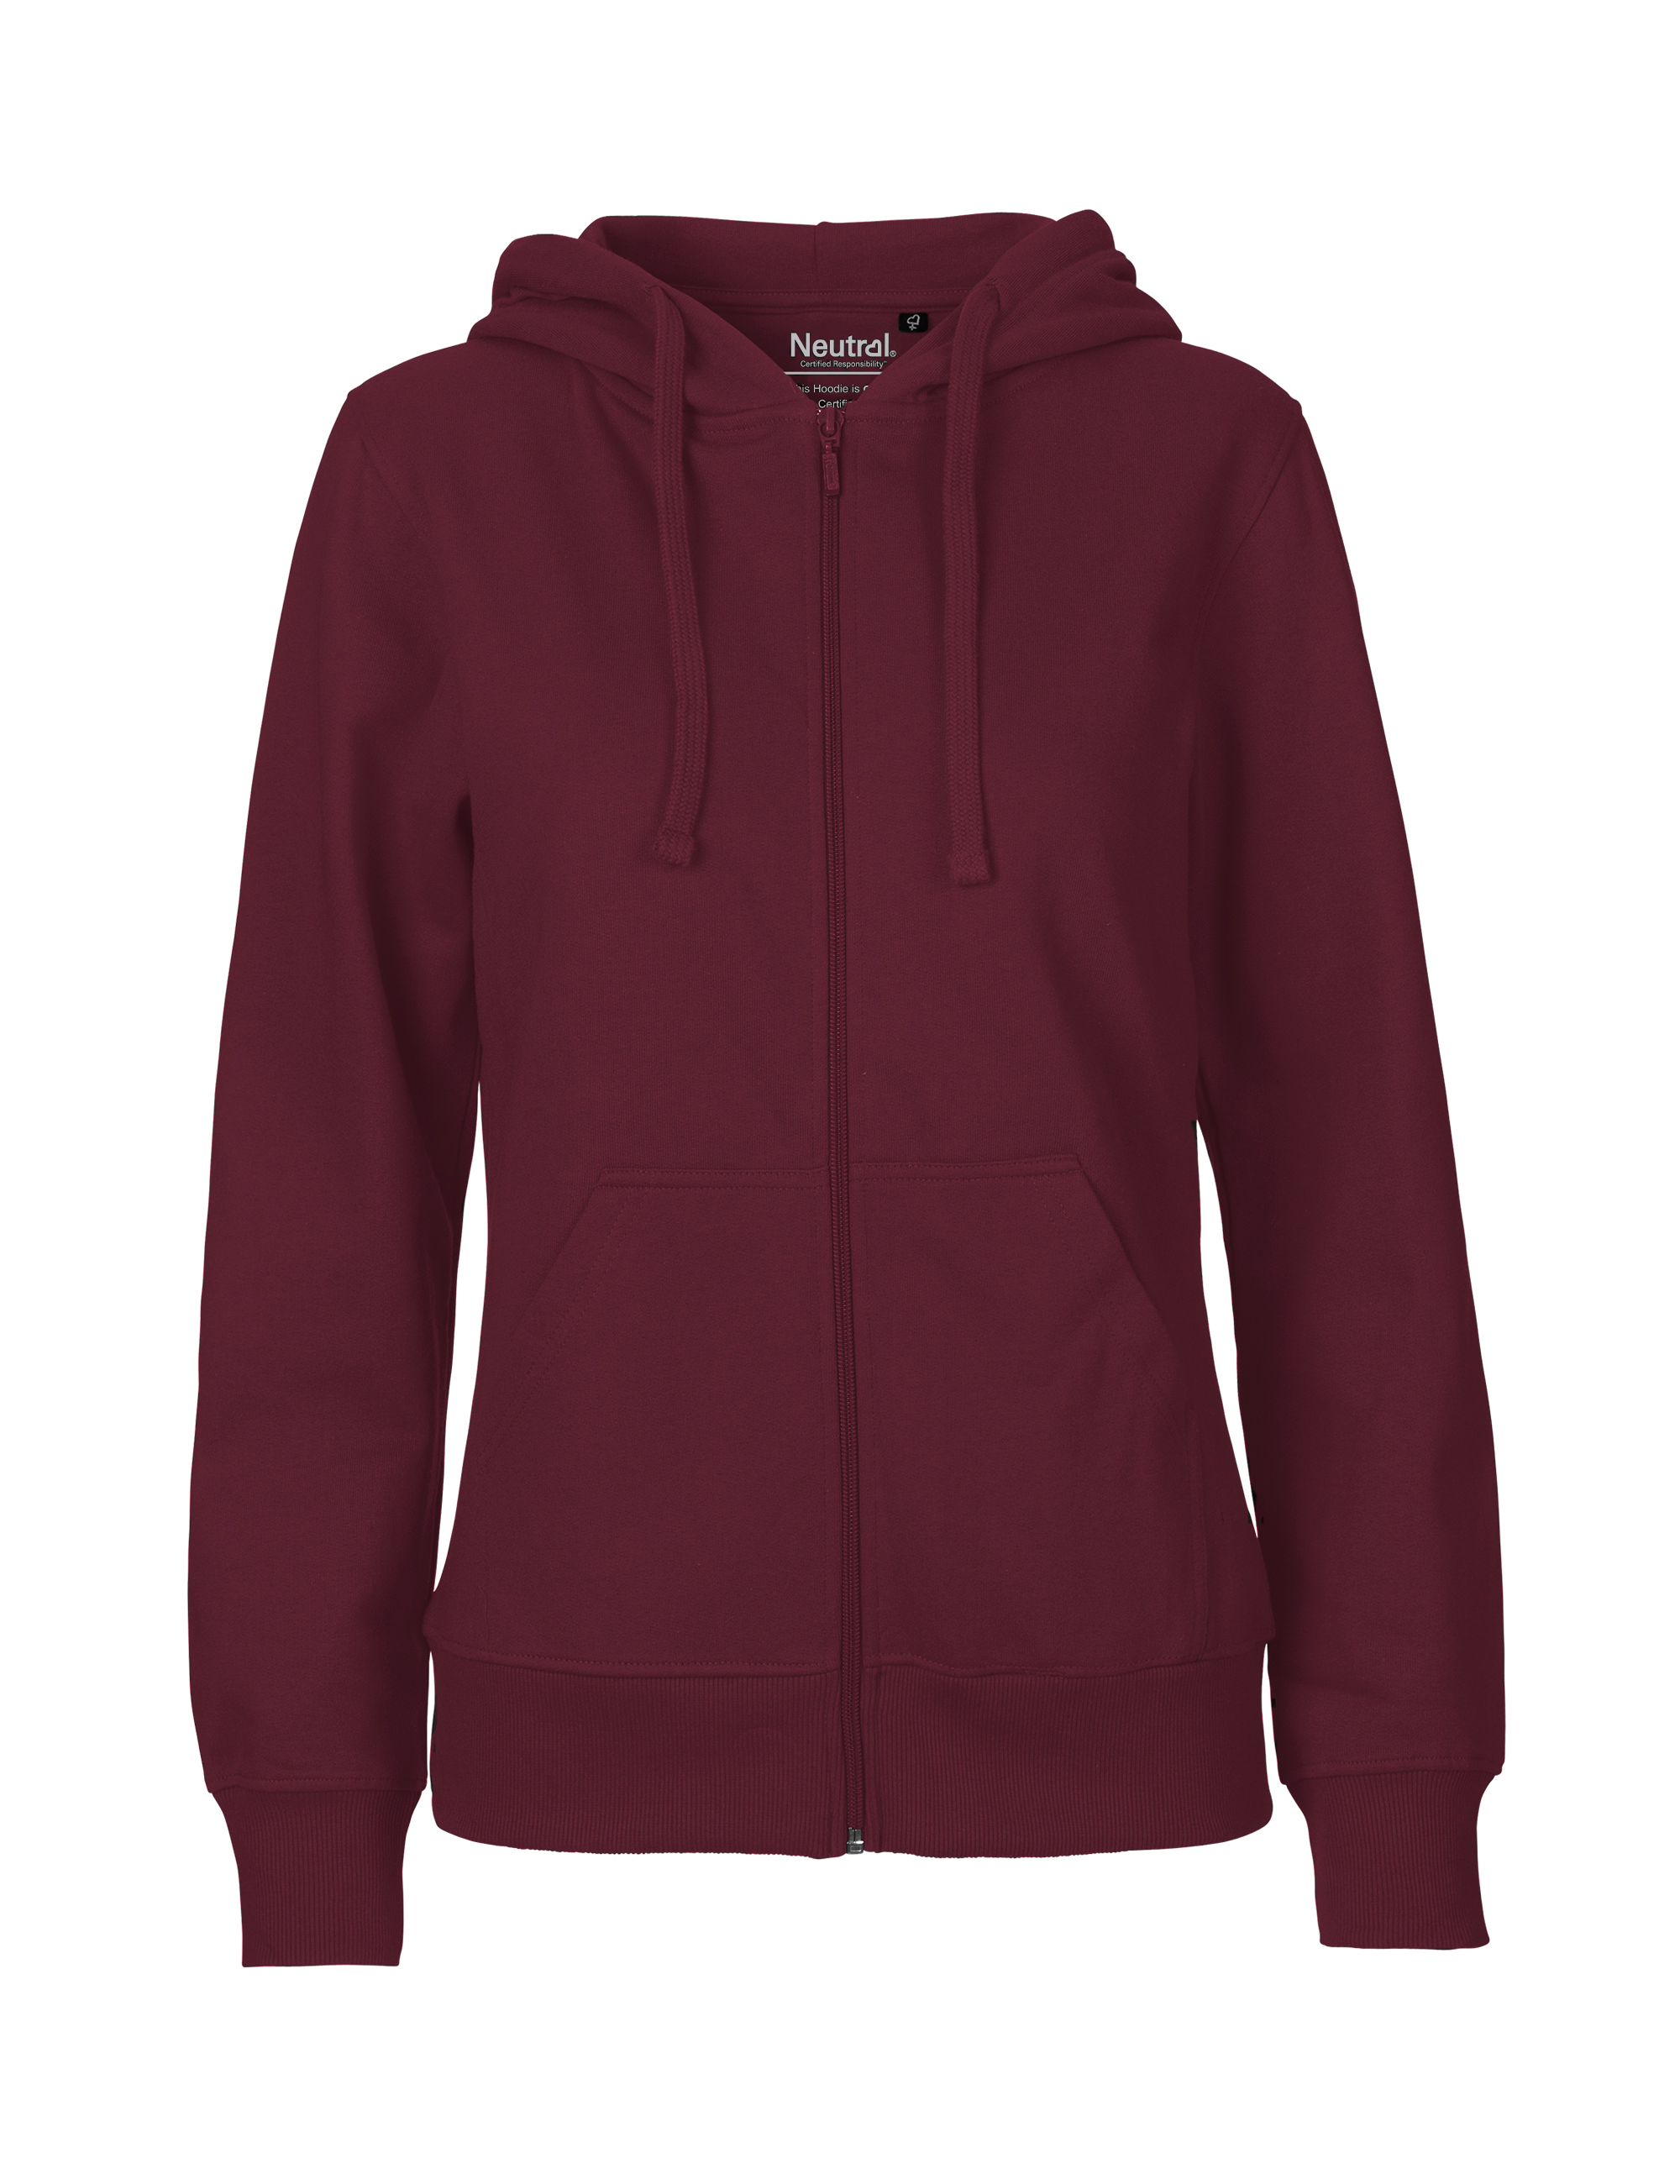 O83301 Ladies Hoodie w. Zip i Bordeaux